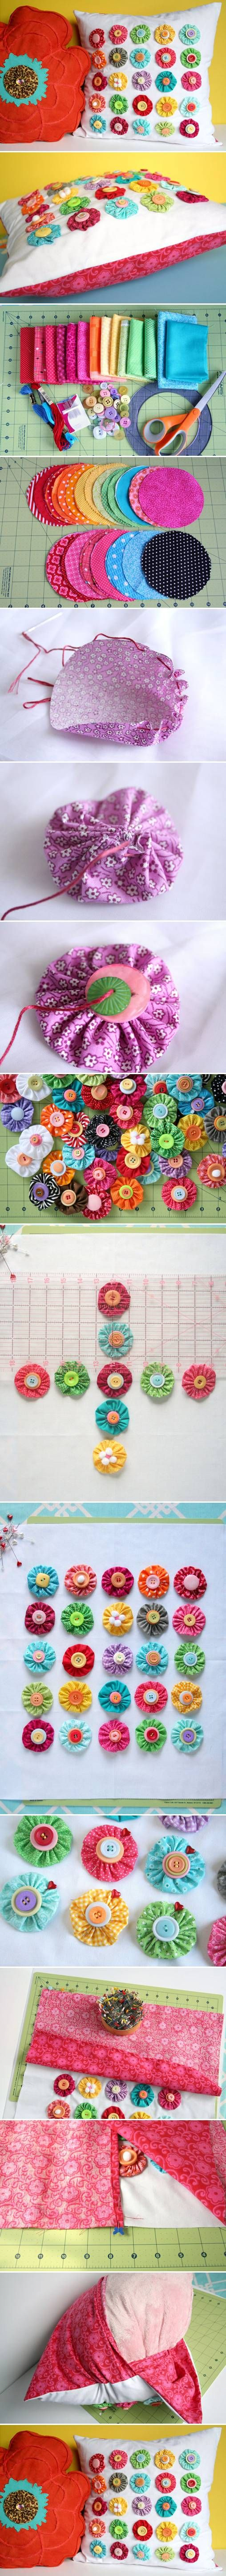 best images about couture artisanale on pinterest crafts